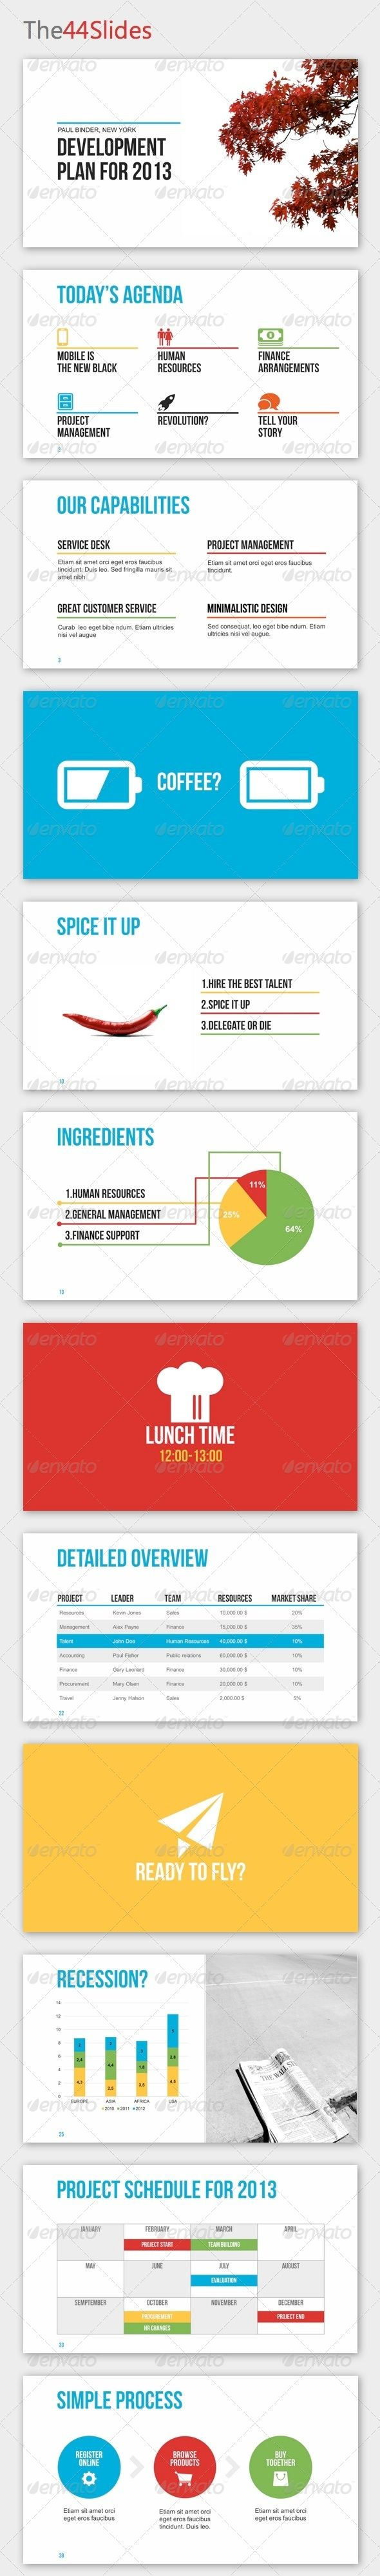 The44Slides Powerpoint Template - Business Powerpoint Templates